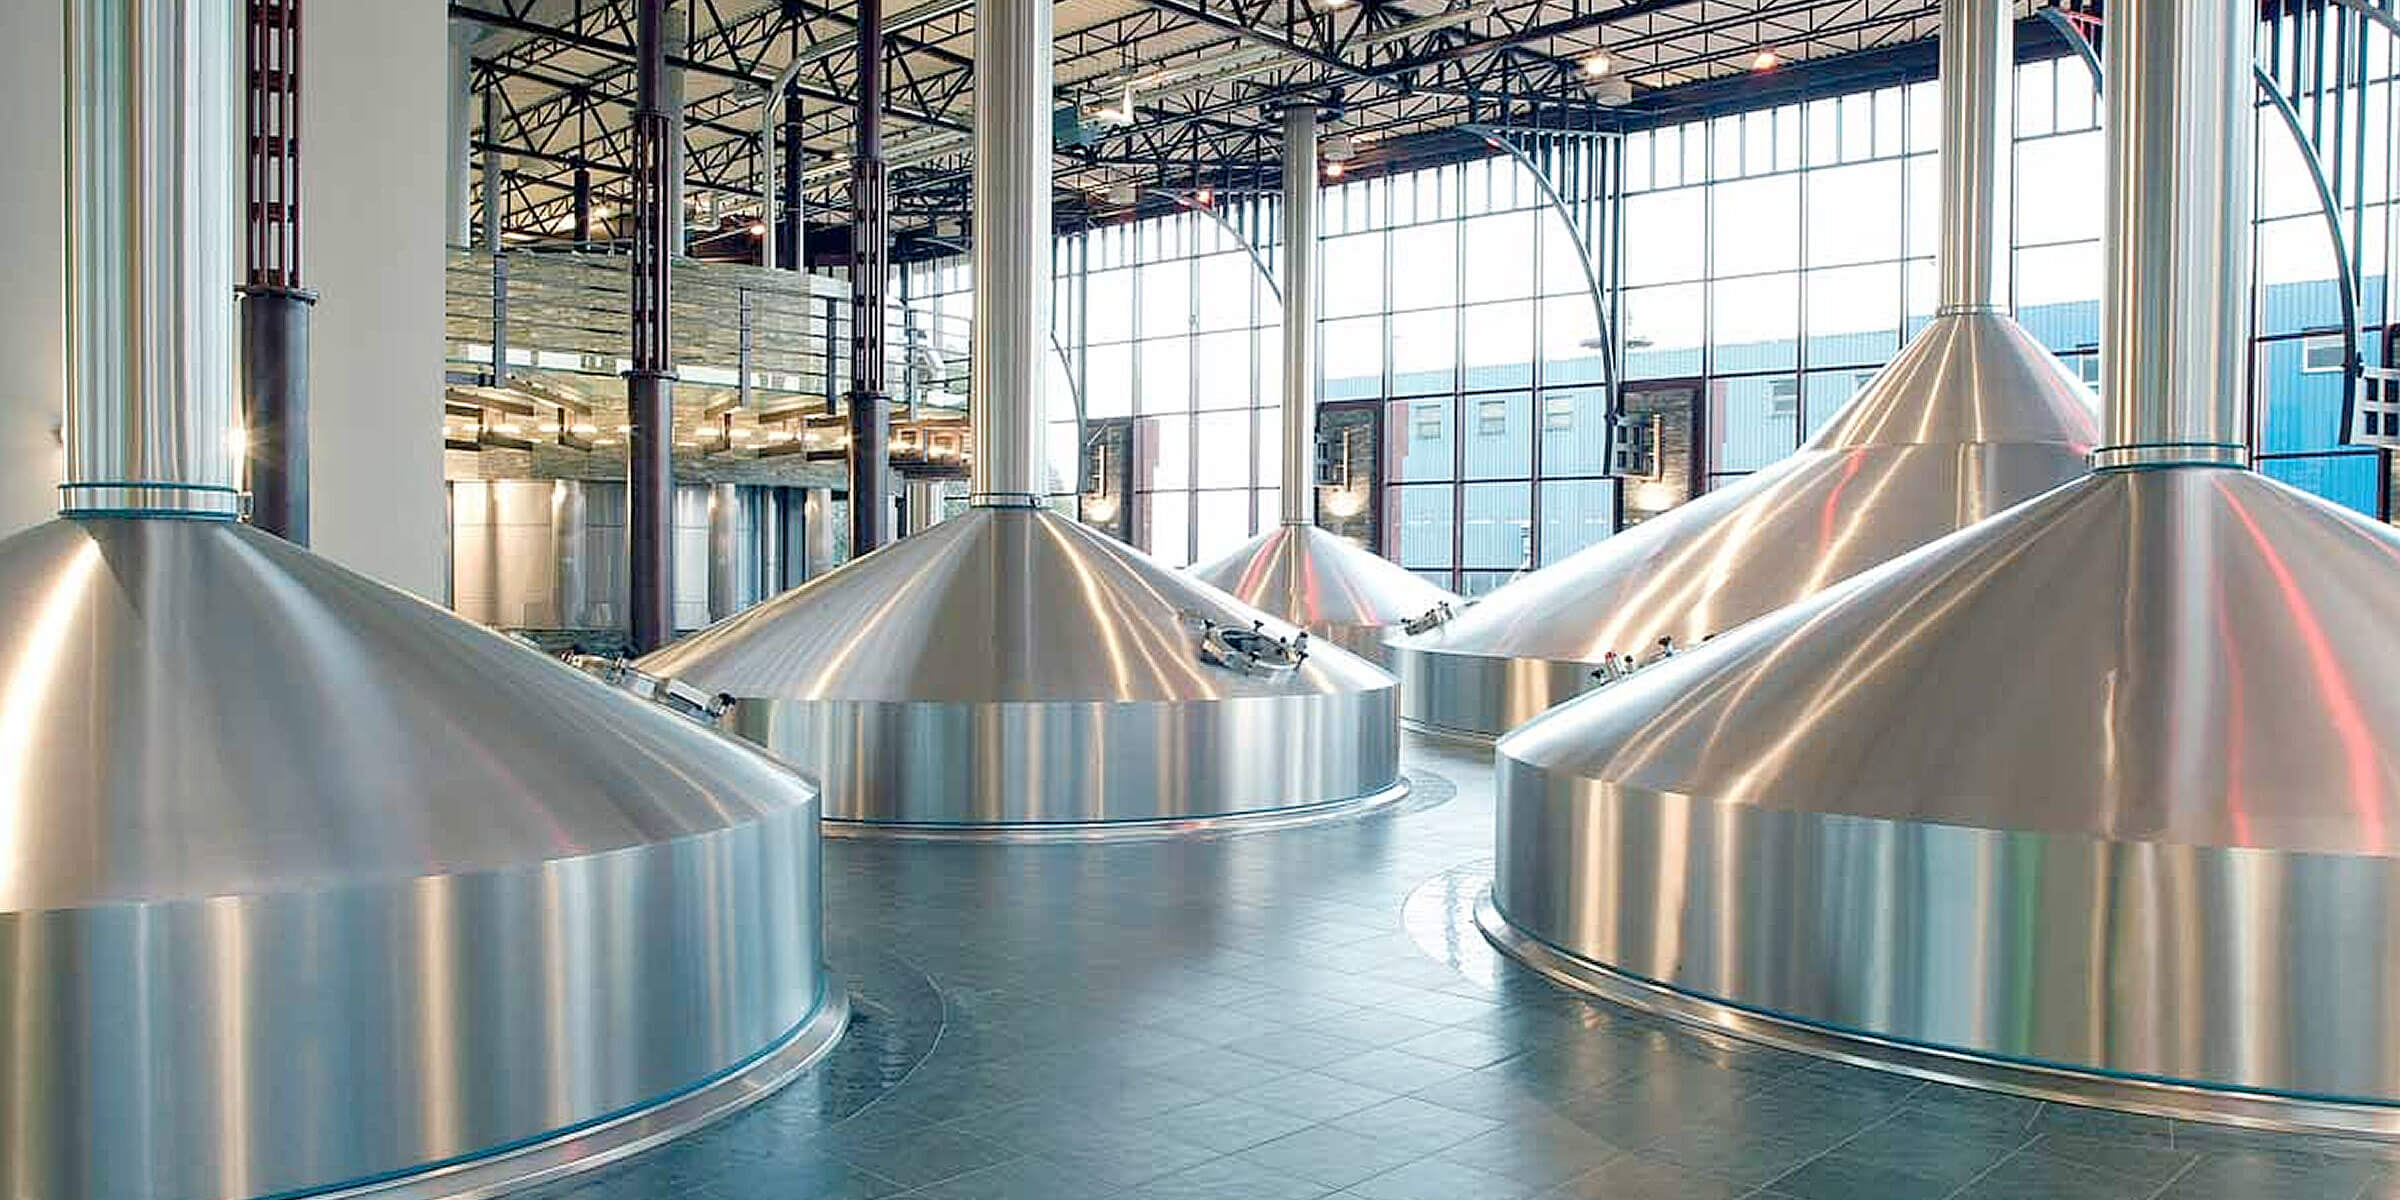 Tanks in a large brewhouse